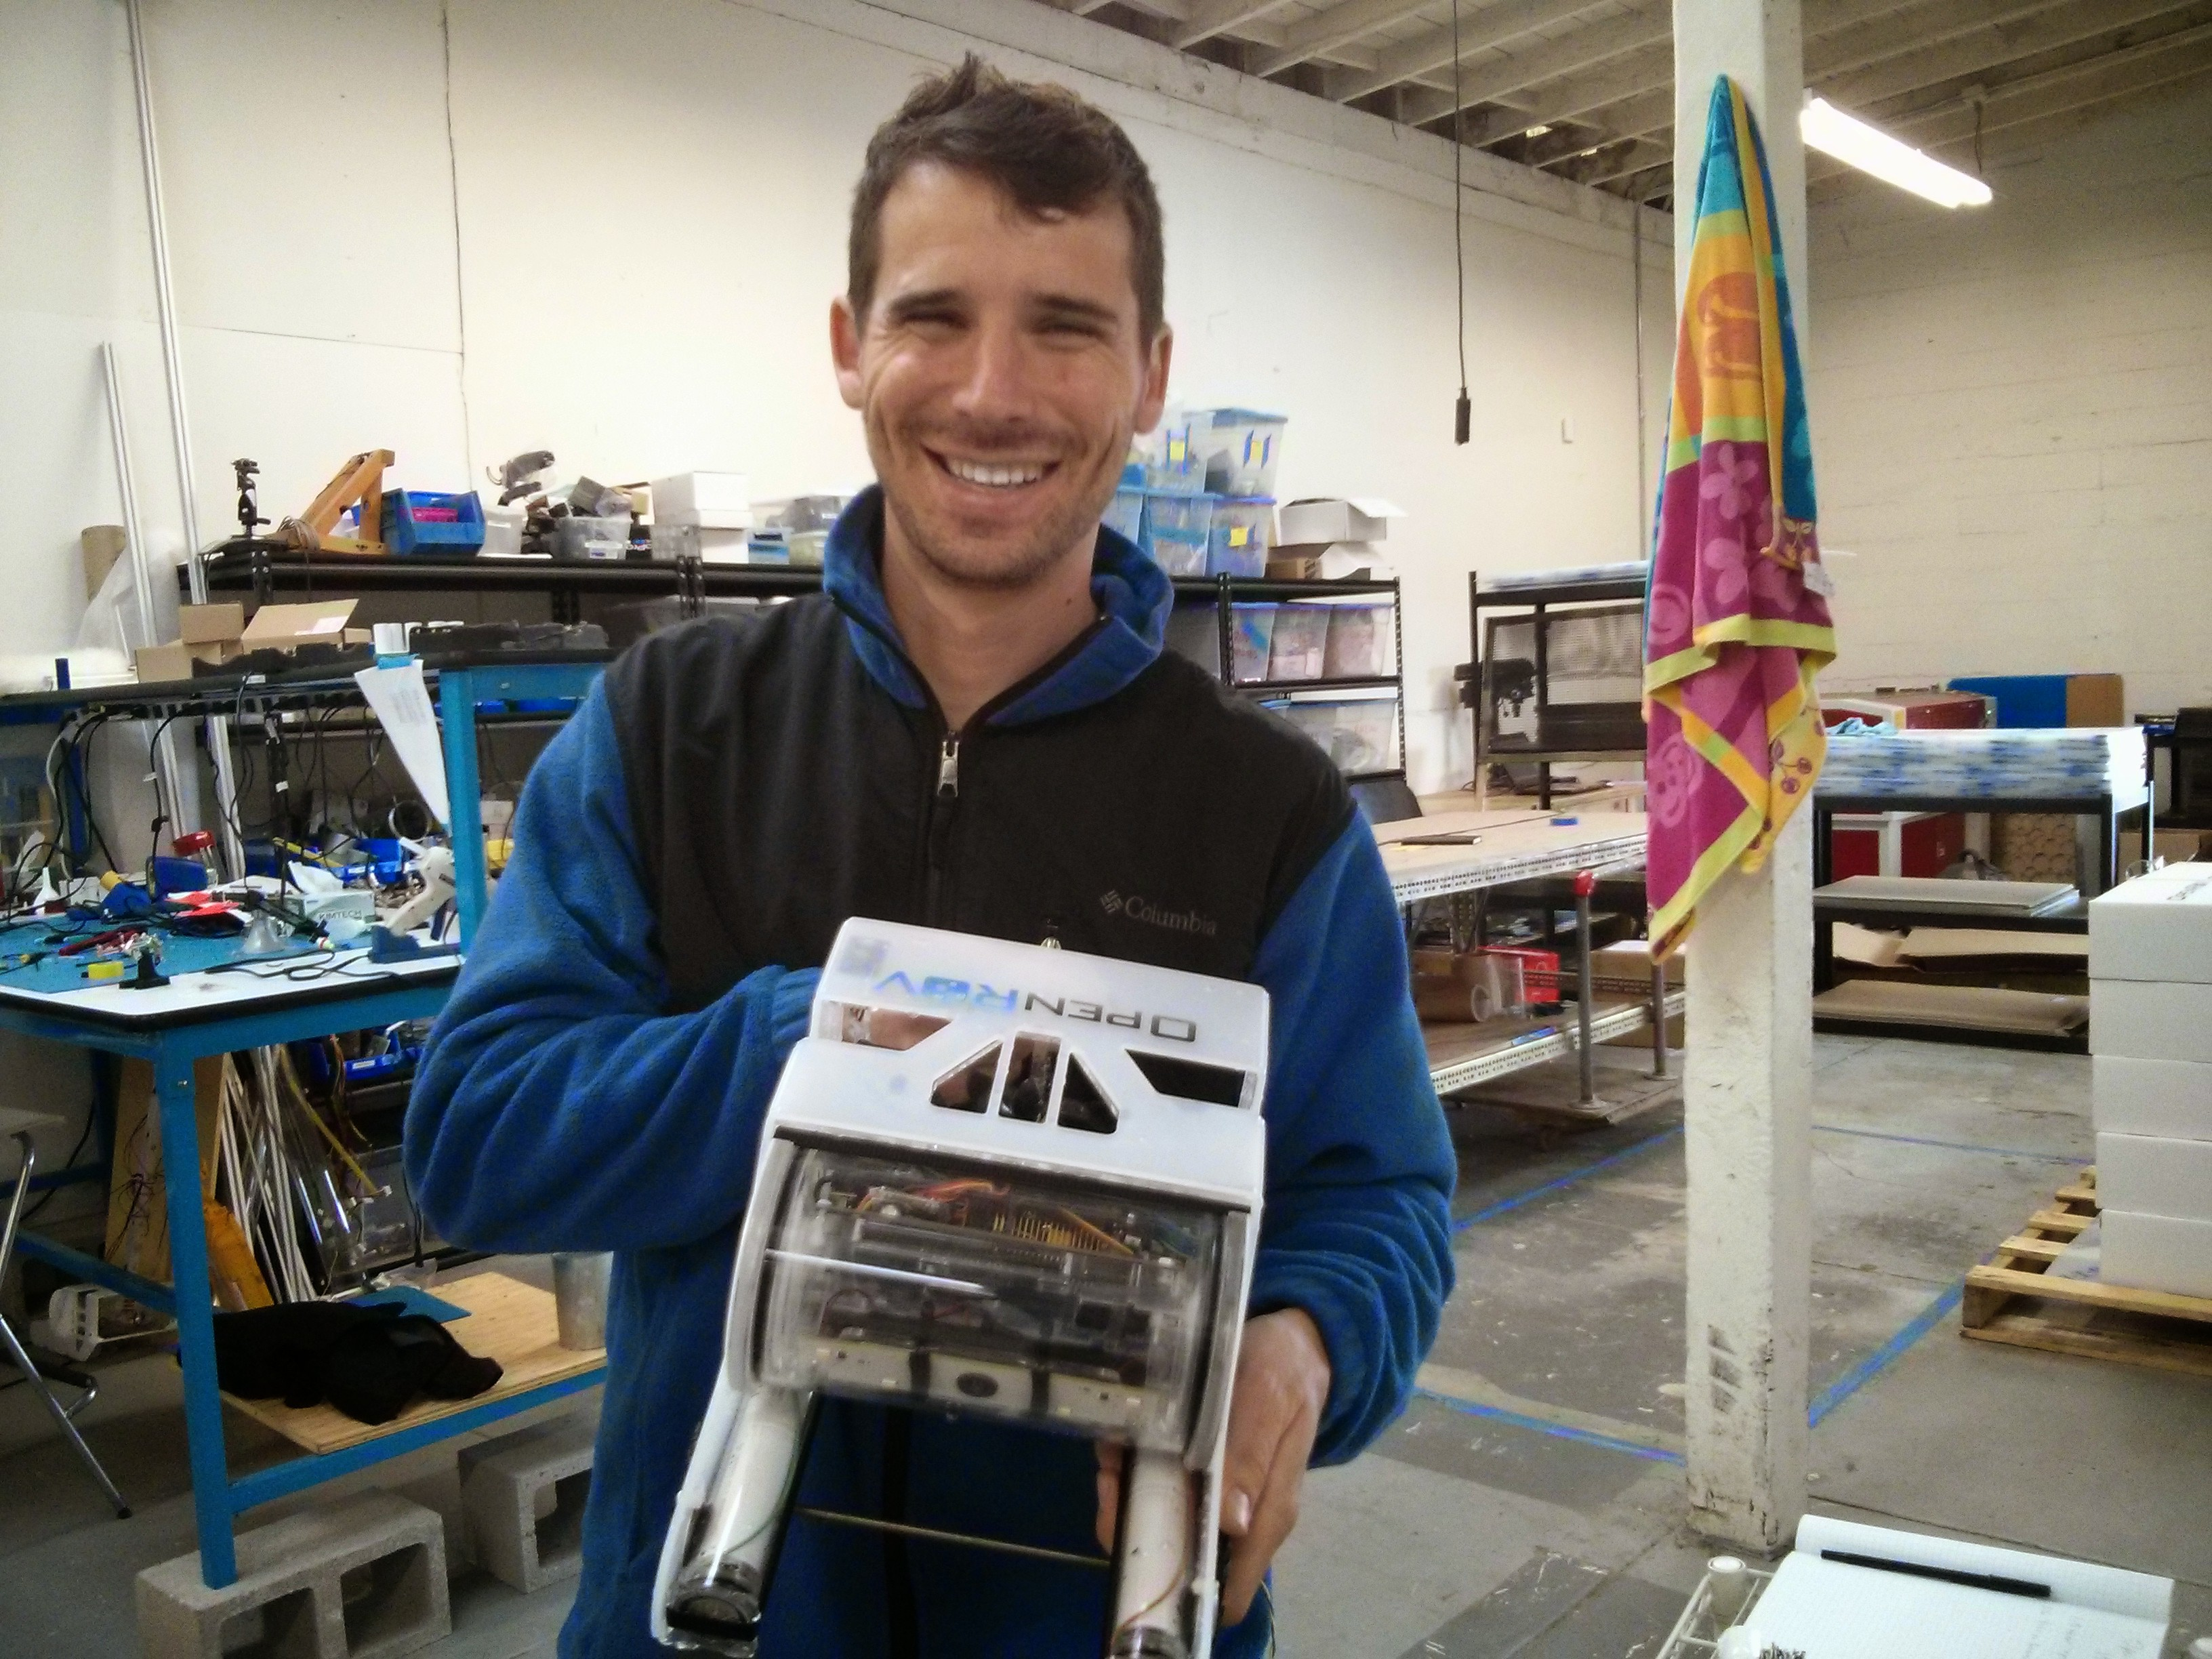 OpenROV: Making Exploration Accessible